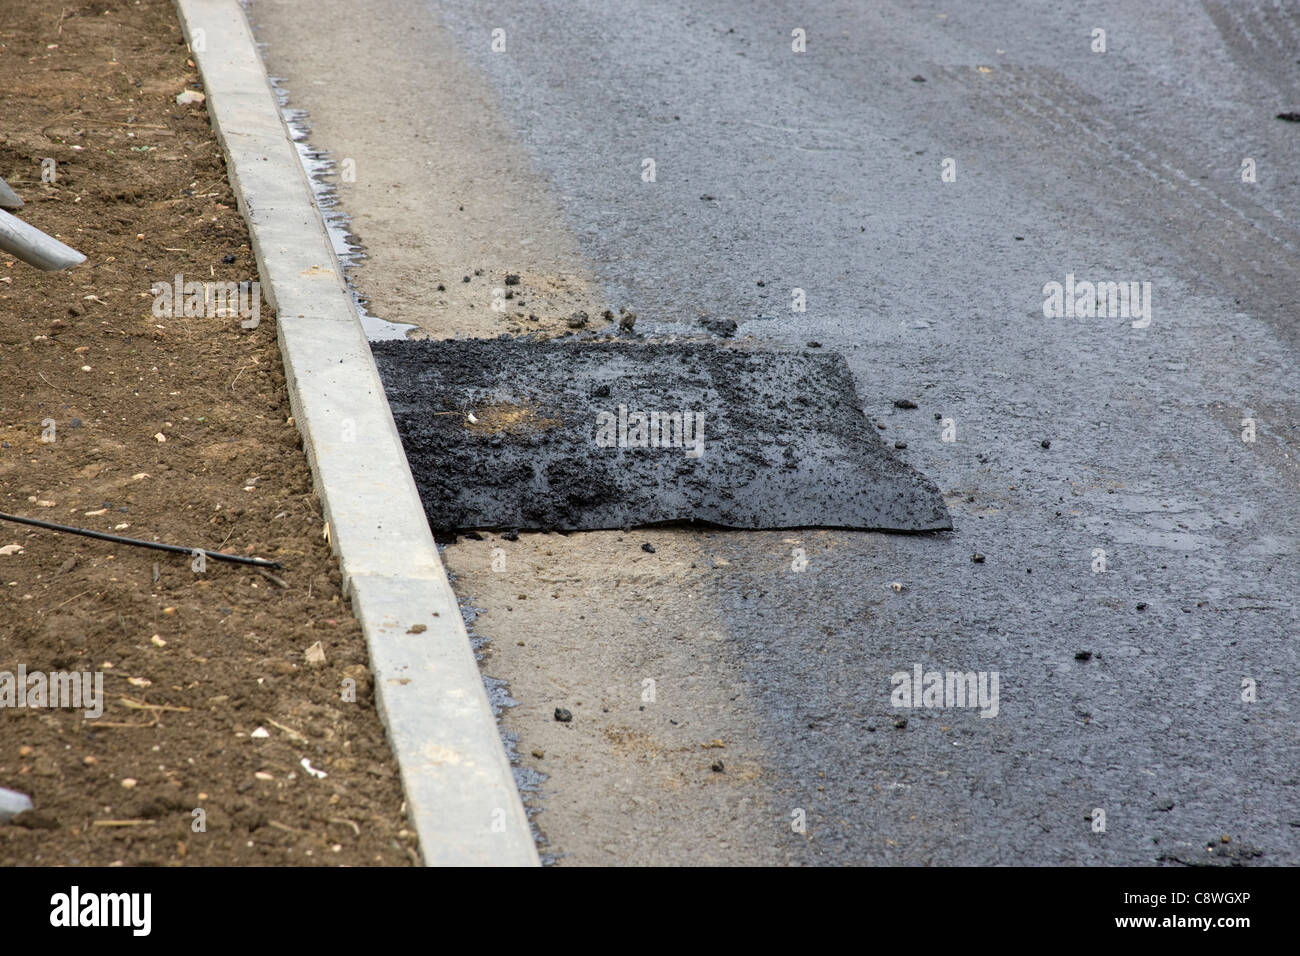 Road drain covered with a square of felt before the machine laying a new tarmac road surface reaches the area. - Stock Image